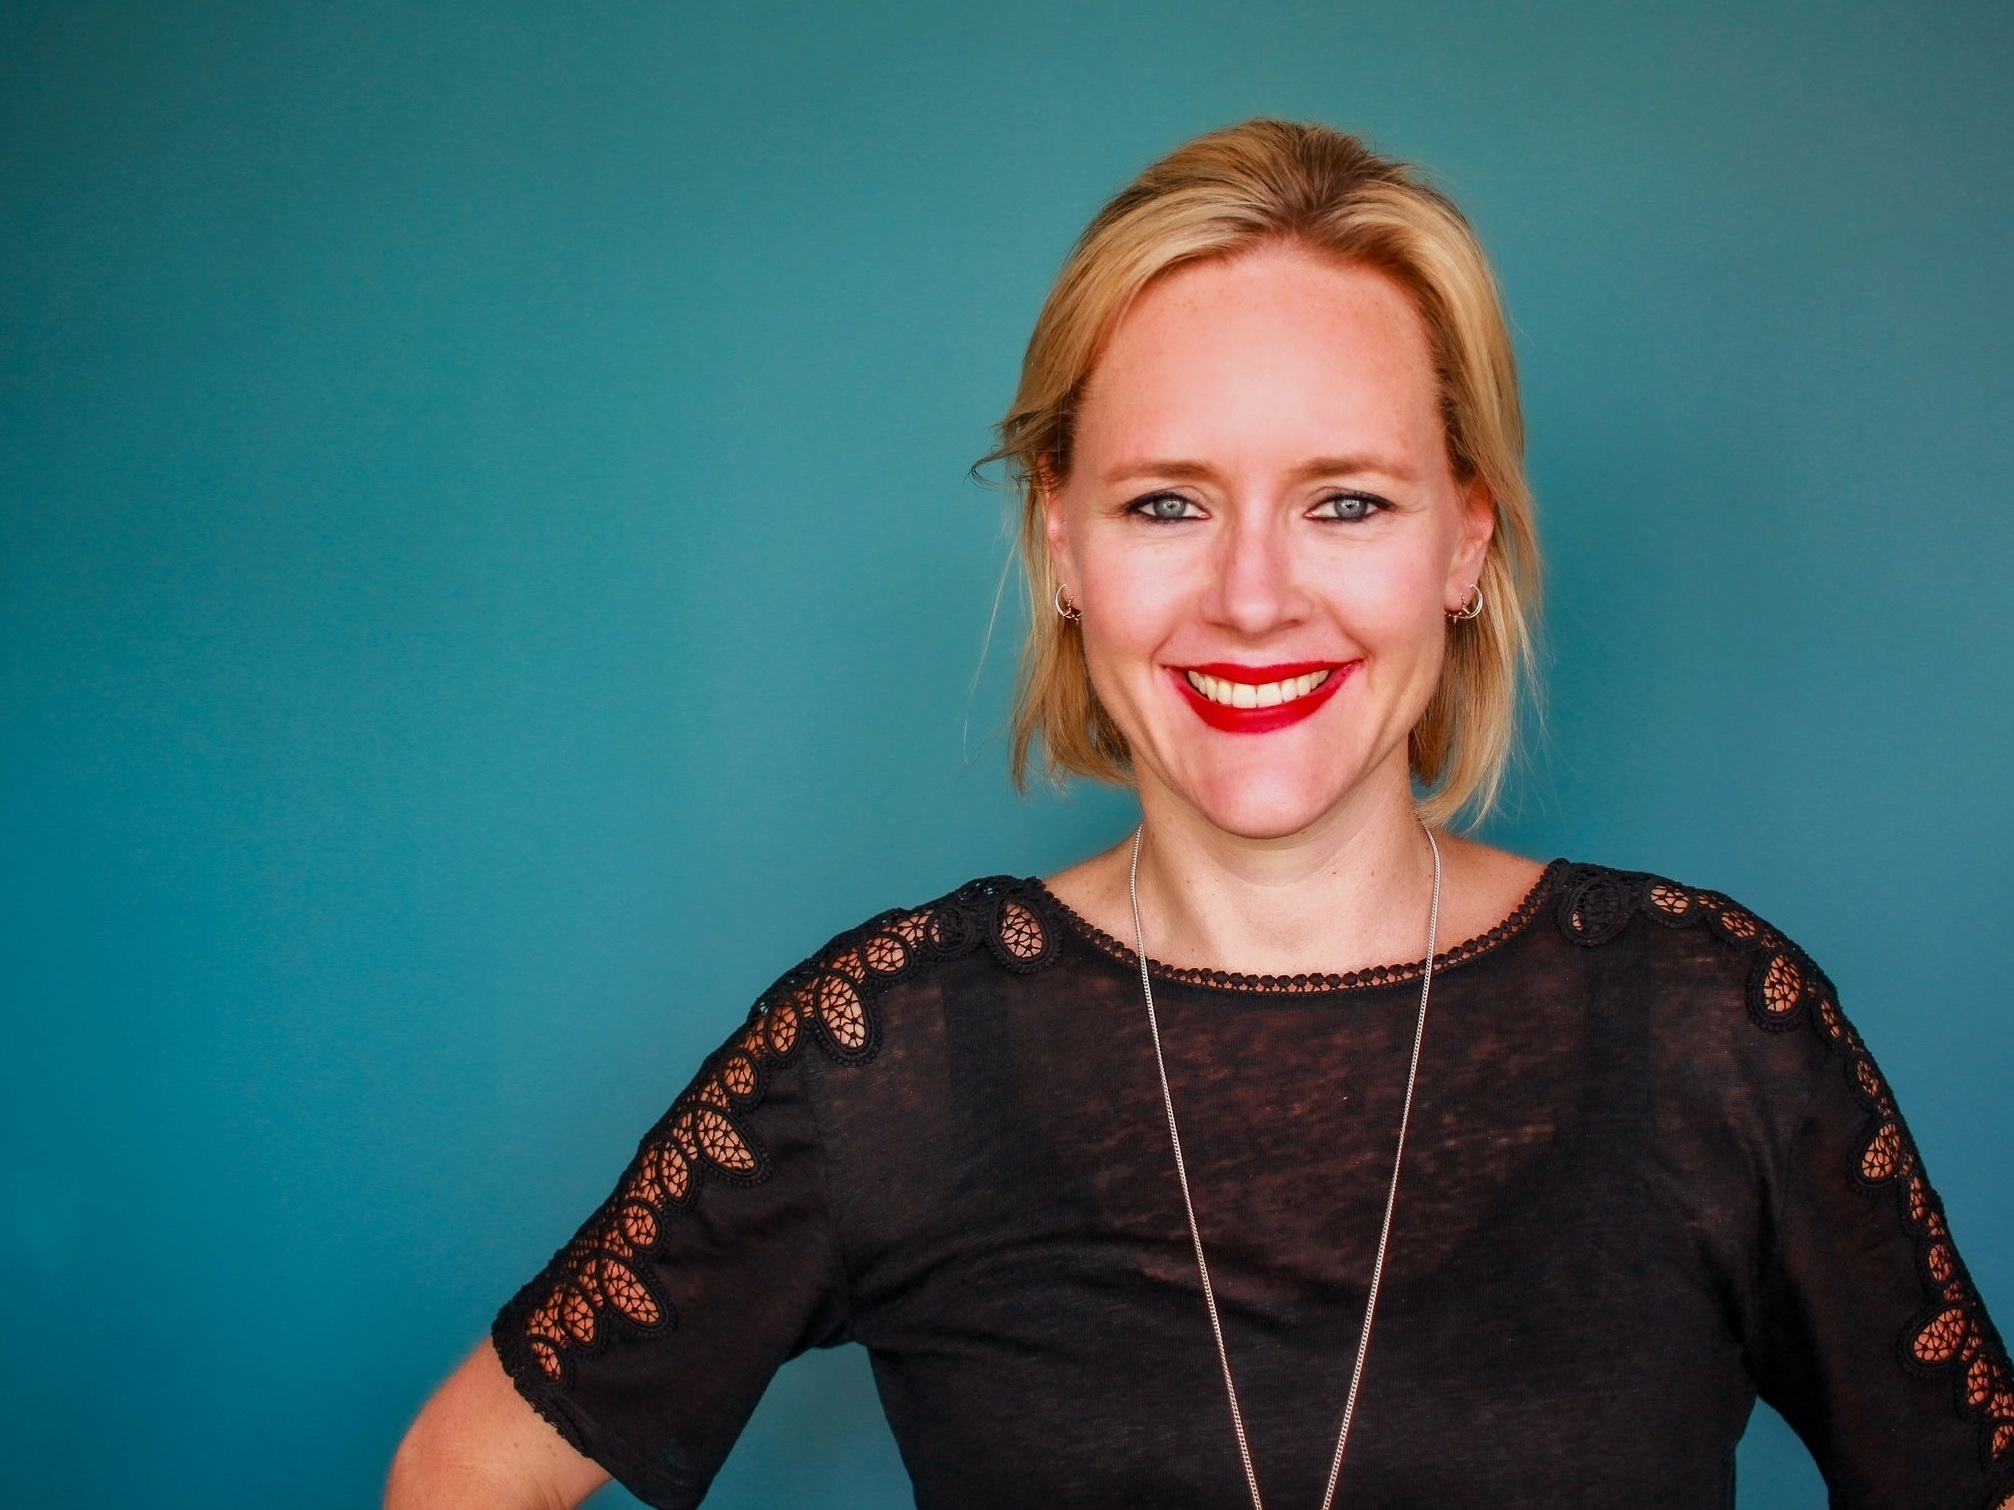 Alice Scott - Chief Behavioural Officer and EMEA & Americas Managing Director